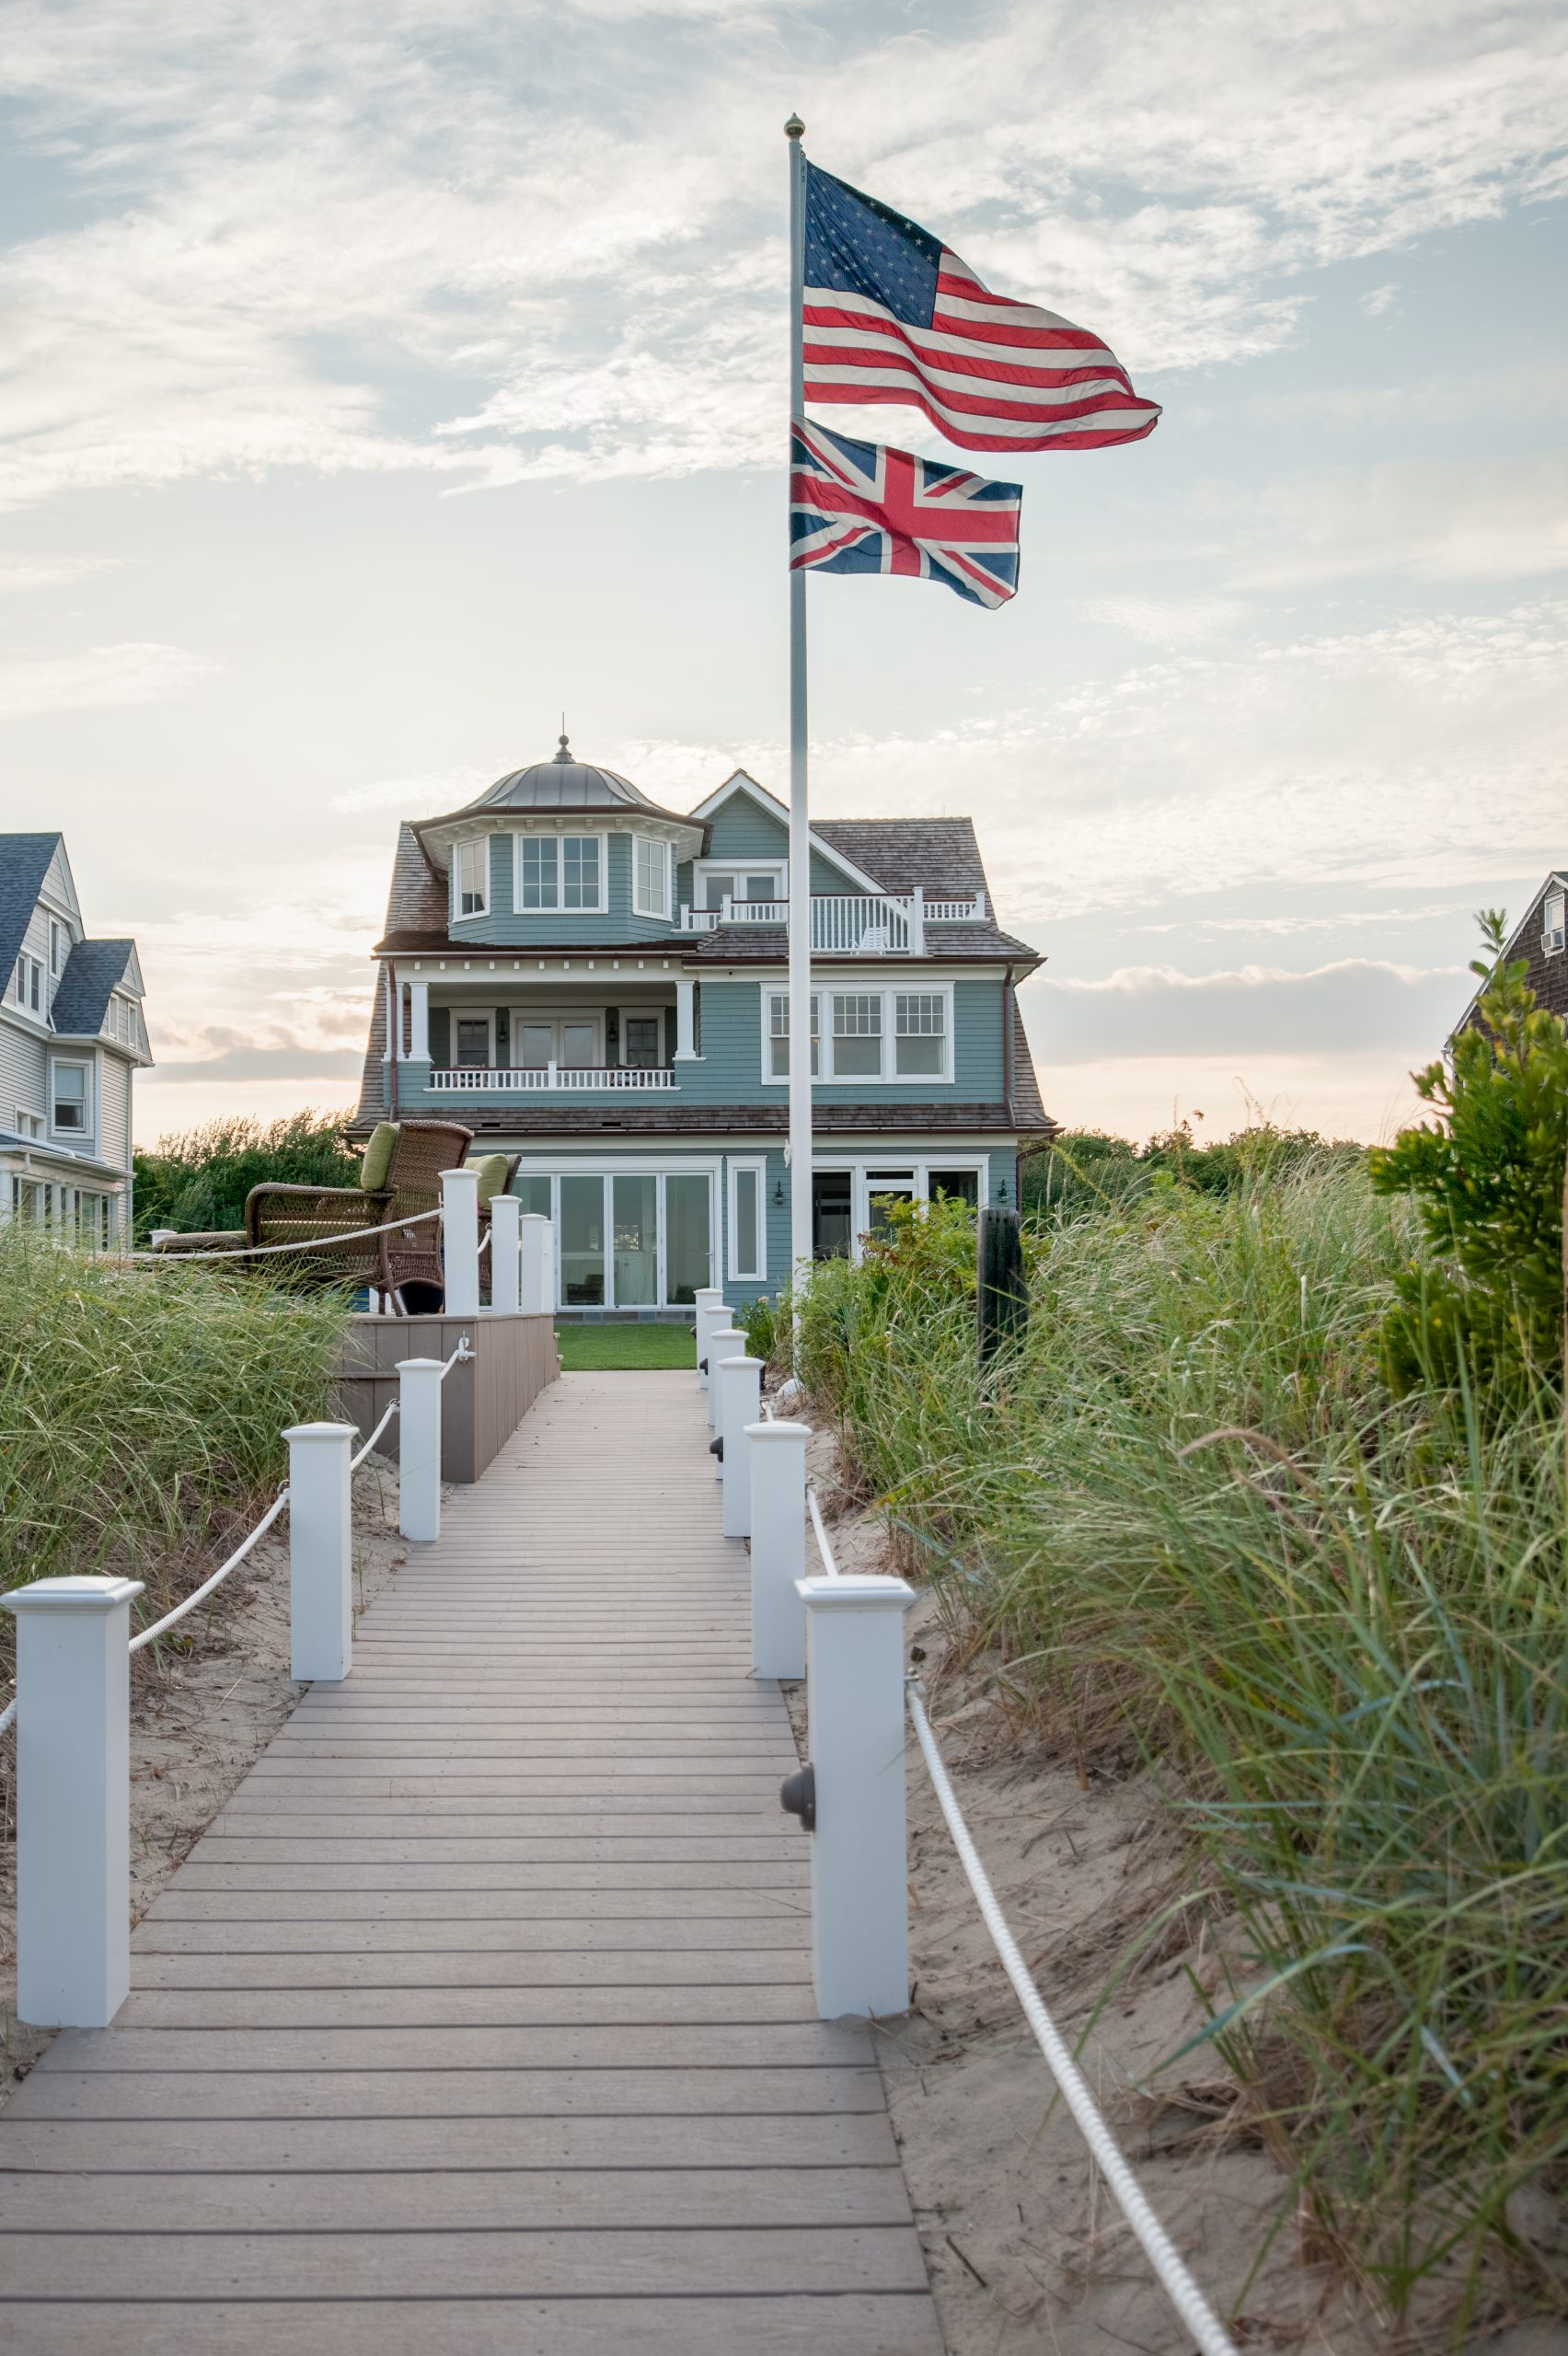 Blue house siding colors with brown shingle roof and white trim. White railings and columns. Metal accent roof. Beautiful ocean front custom home.